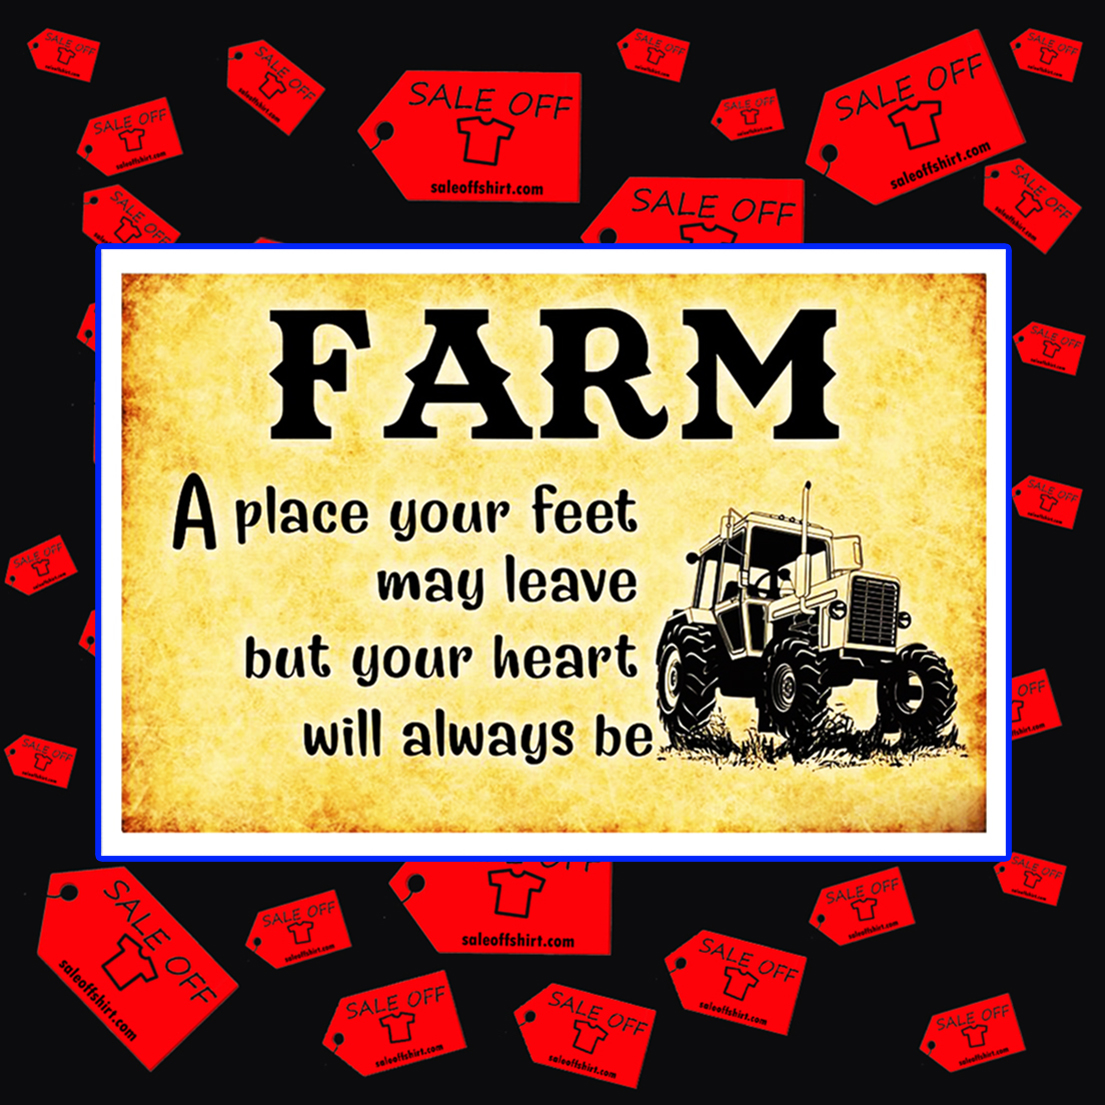 Farm a place your feet may leave but your heart will always be poster 17x11